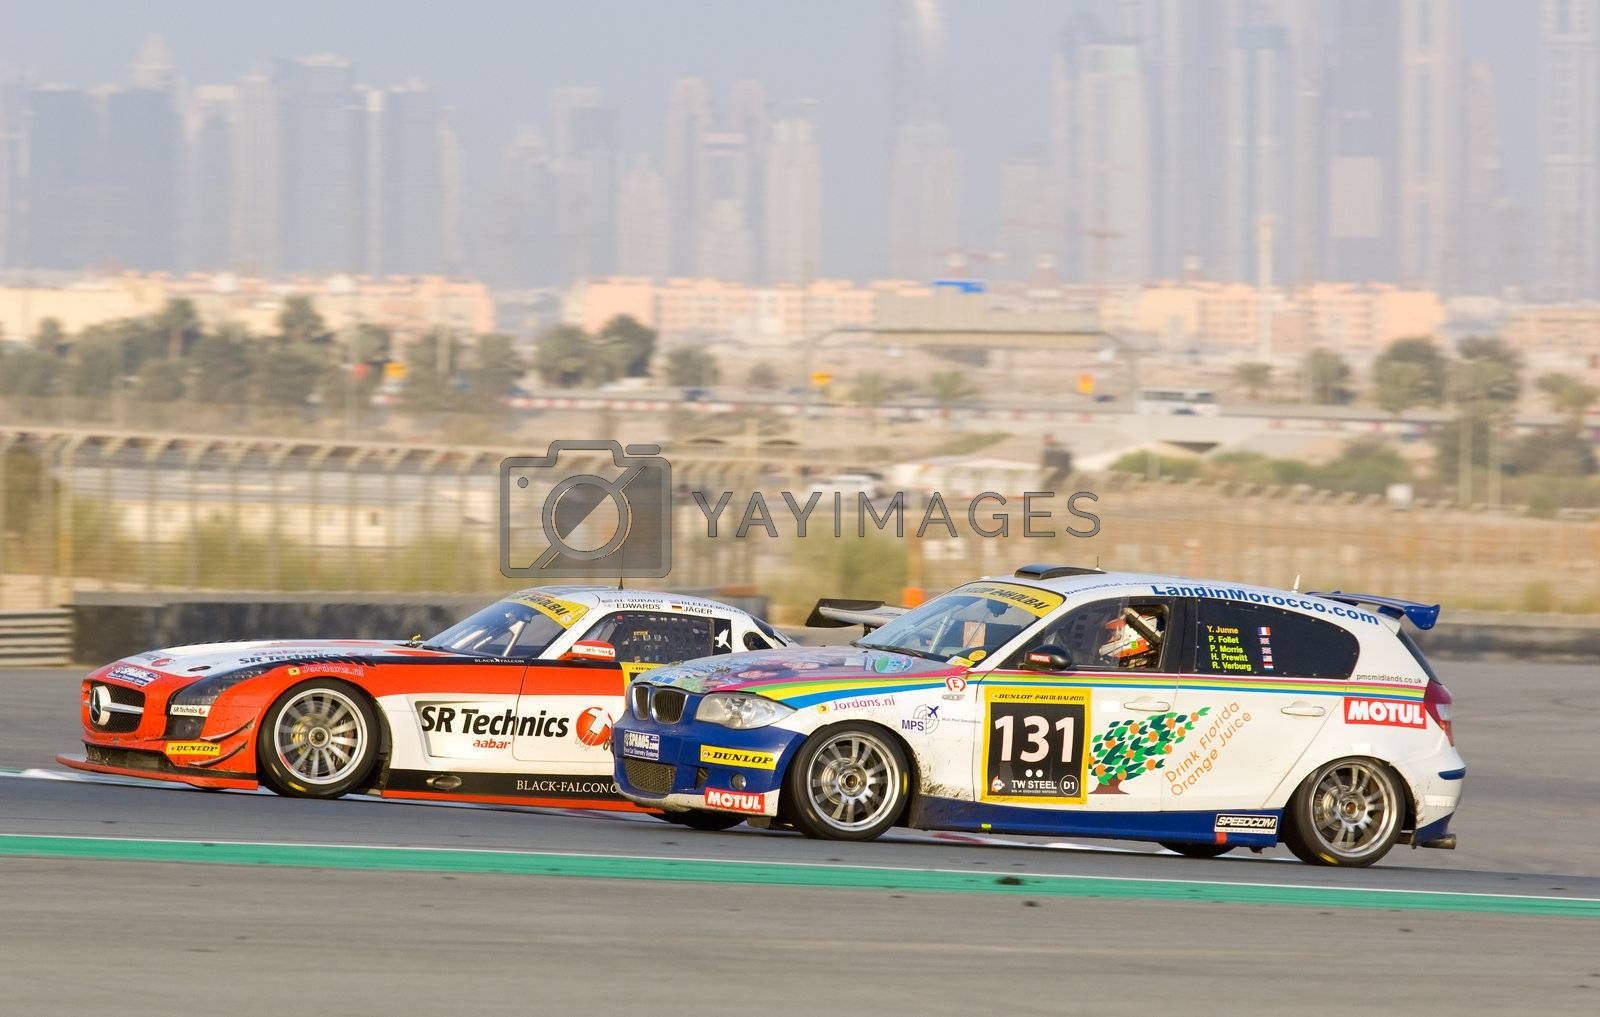 DUBAI - JANUARY 14: Mercedes SLS AMG GT3 and BMW 120D with Dubai City in the background, during the 2012 Dunlop 24 Hour Race at Dubai Autodrome on January 14, 2012.